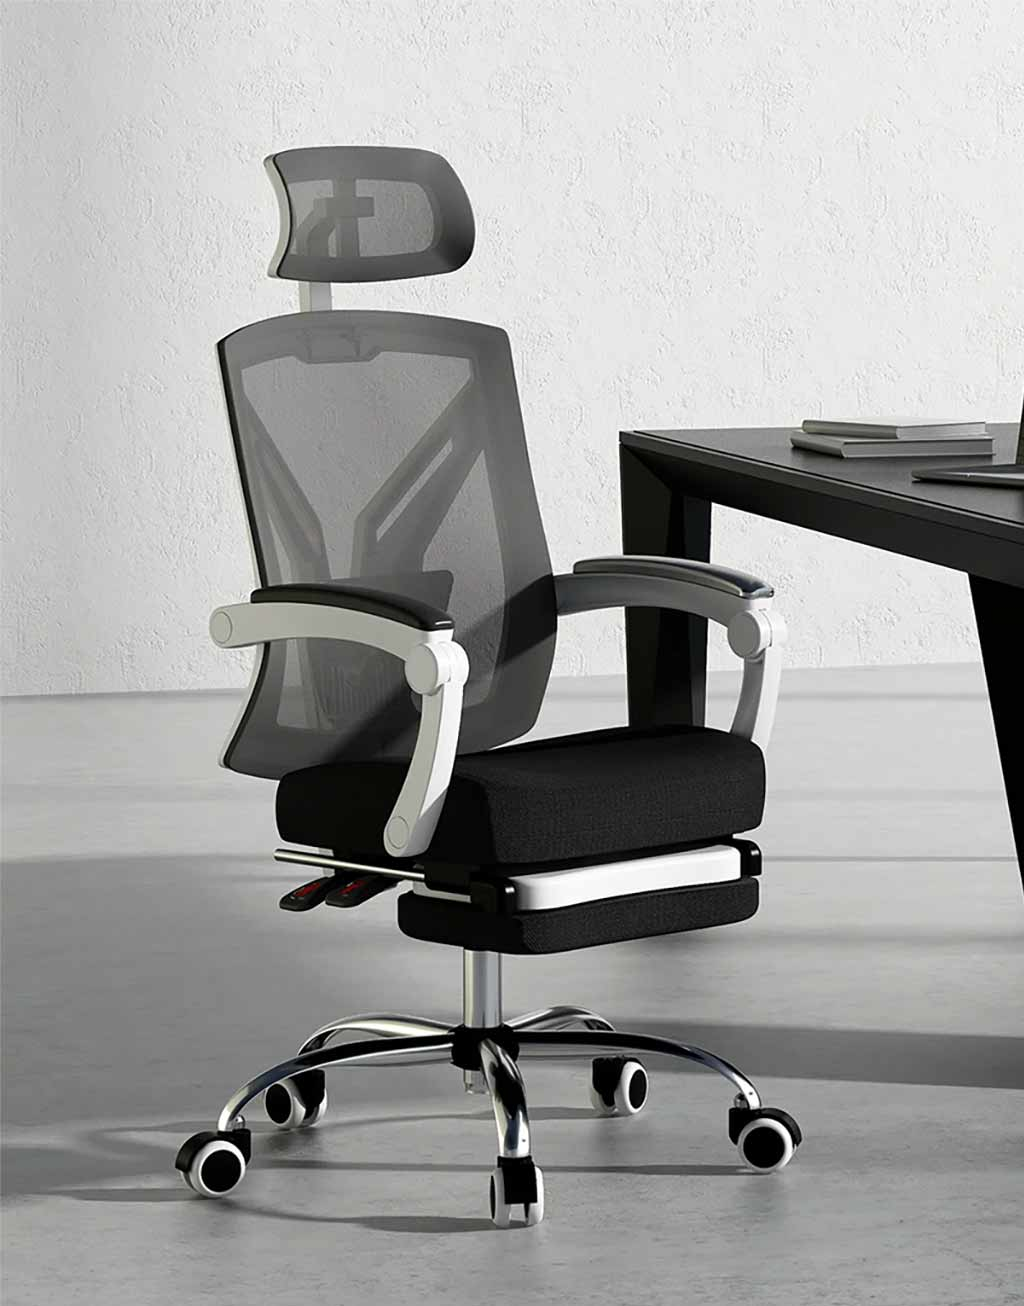 Best Chairs for Studying 1